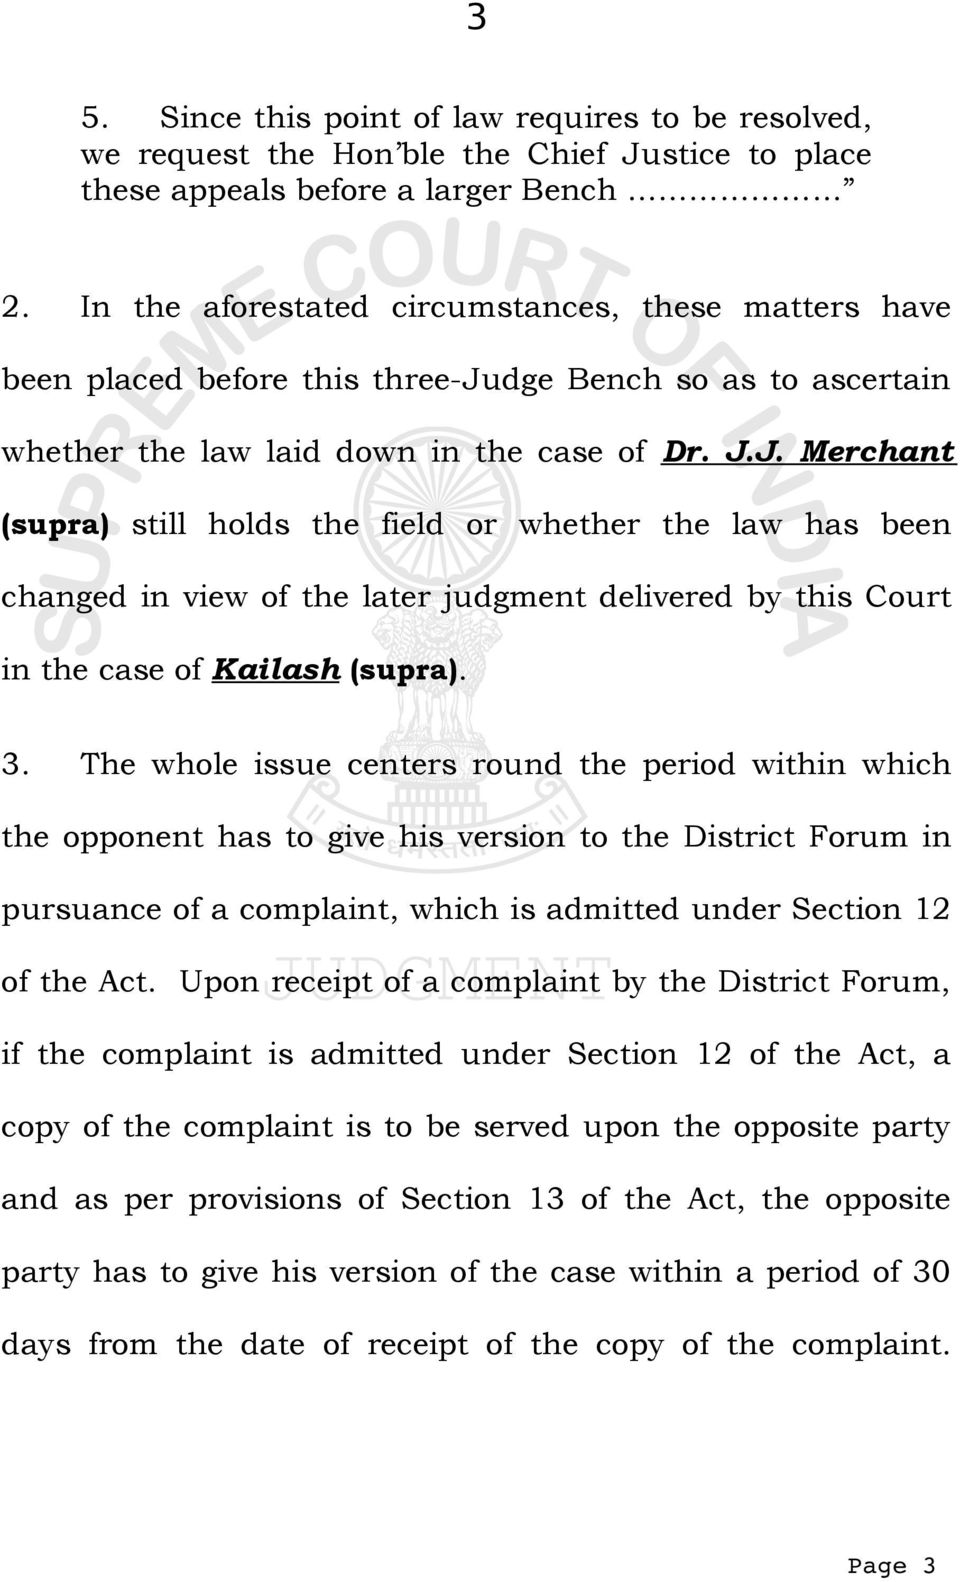 J. Merchant (supra) still holds the field or whether the law has been changed in view of the later judgment delivered by this Court in the case of Kailash (supra). 3.